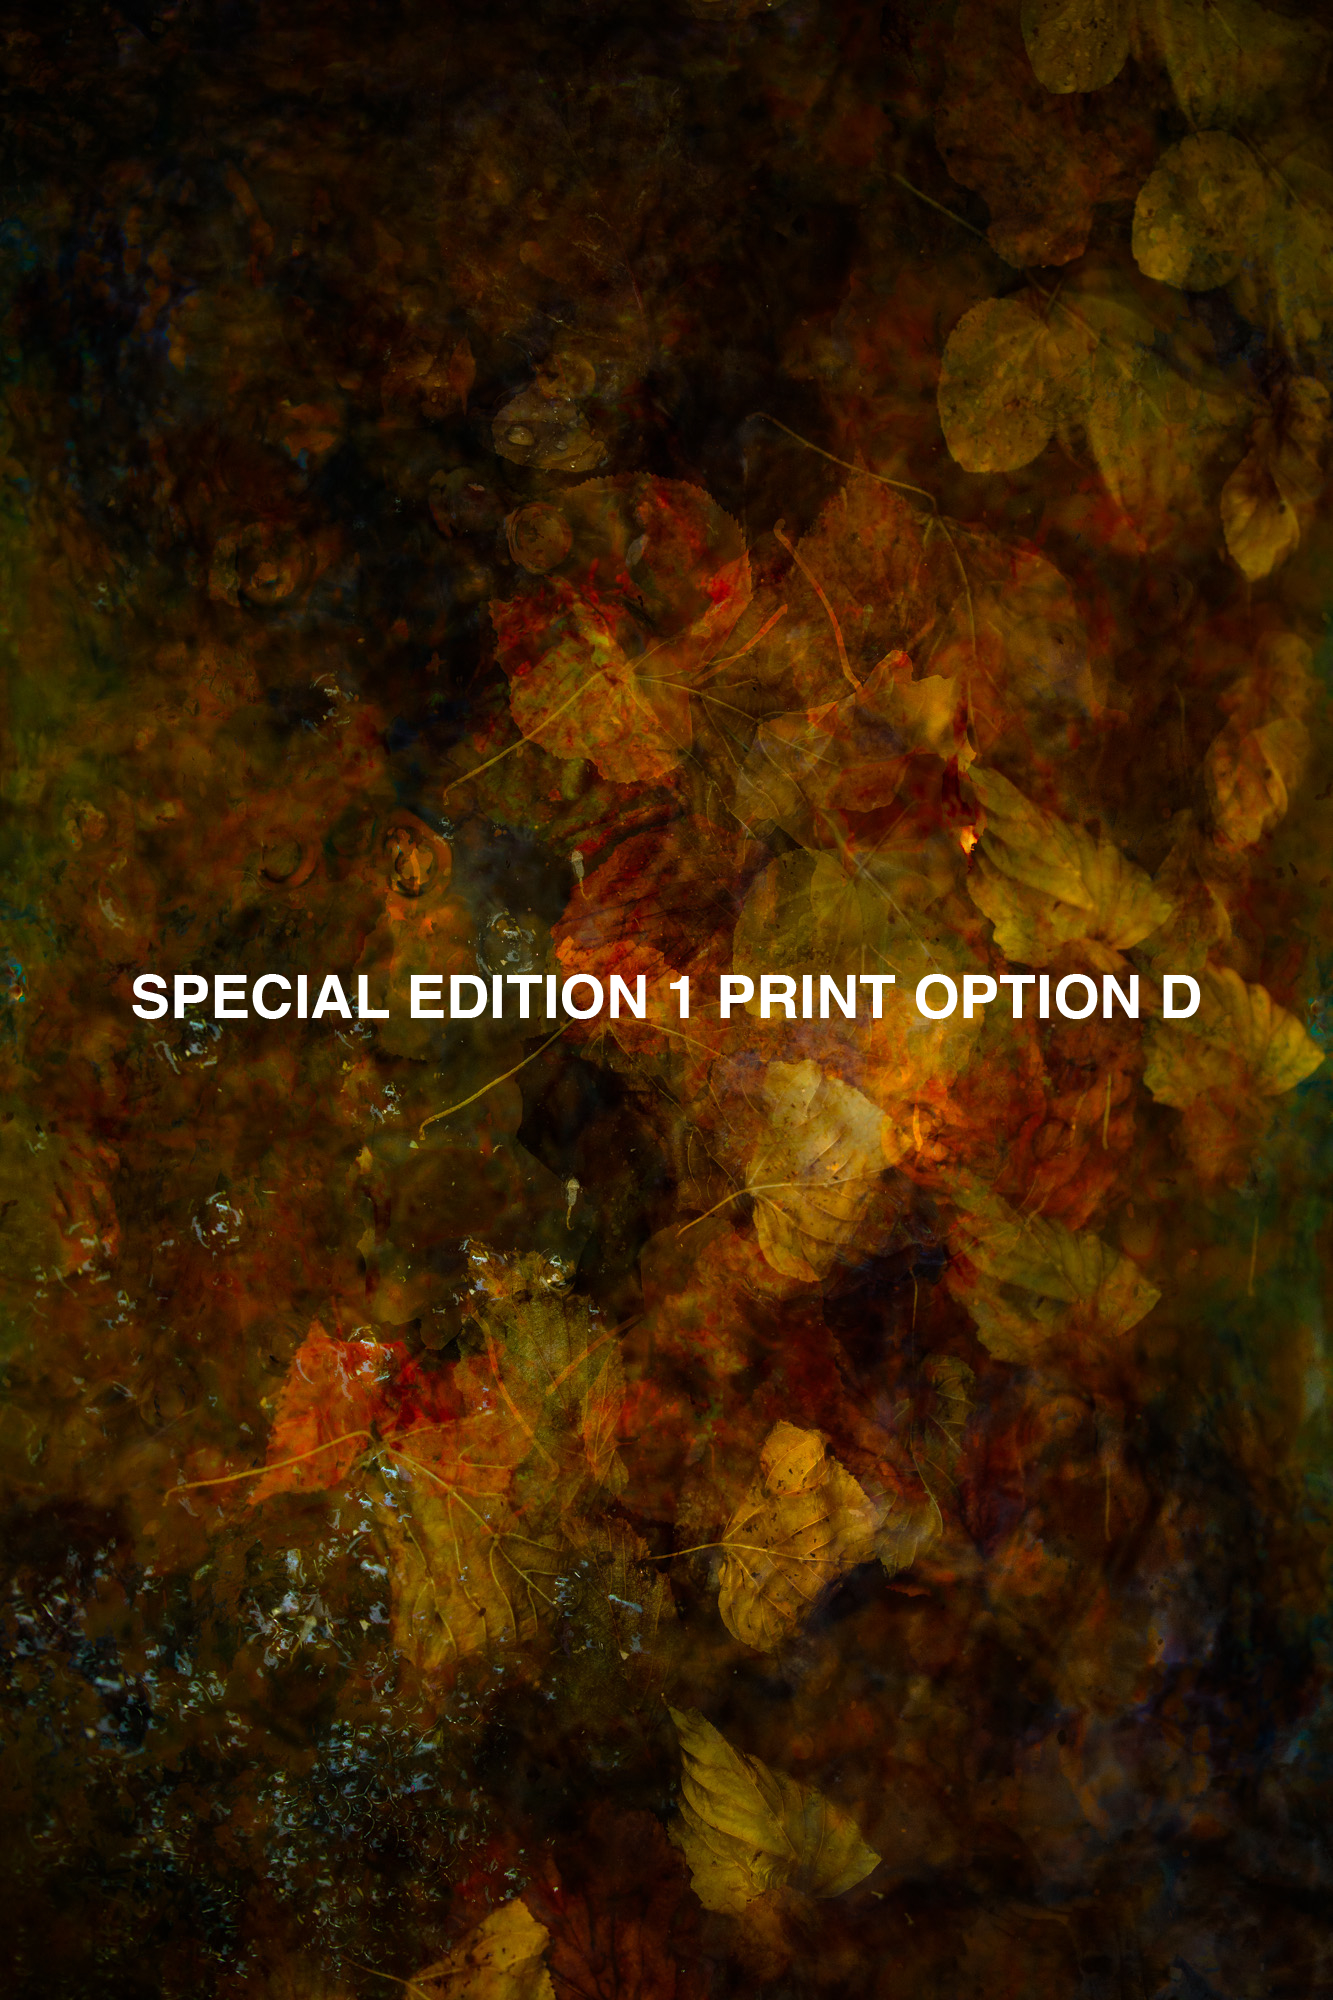 SPECIAL EDITION 1 PRINT D